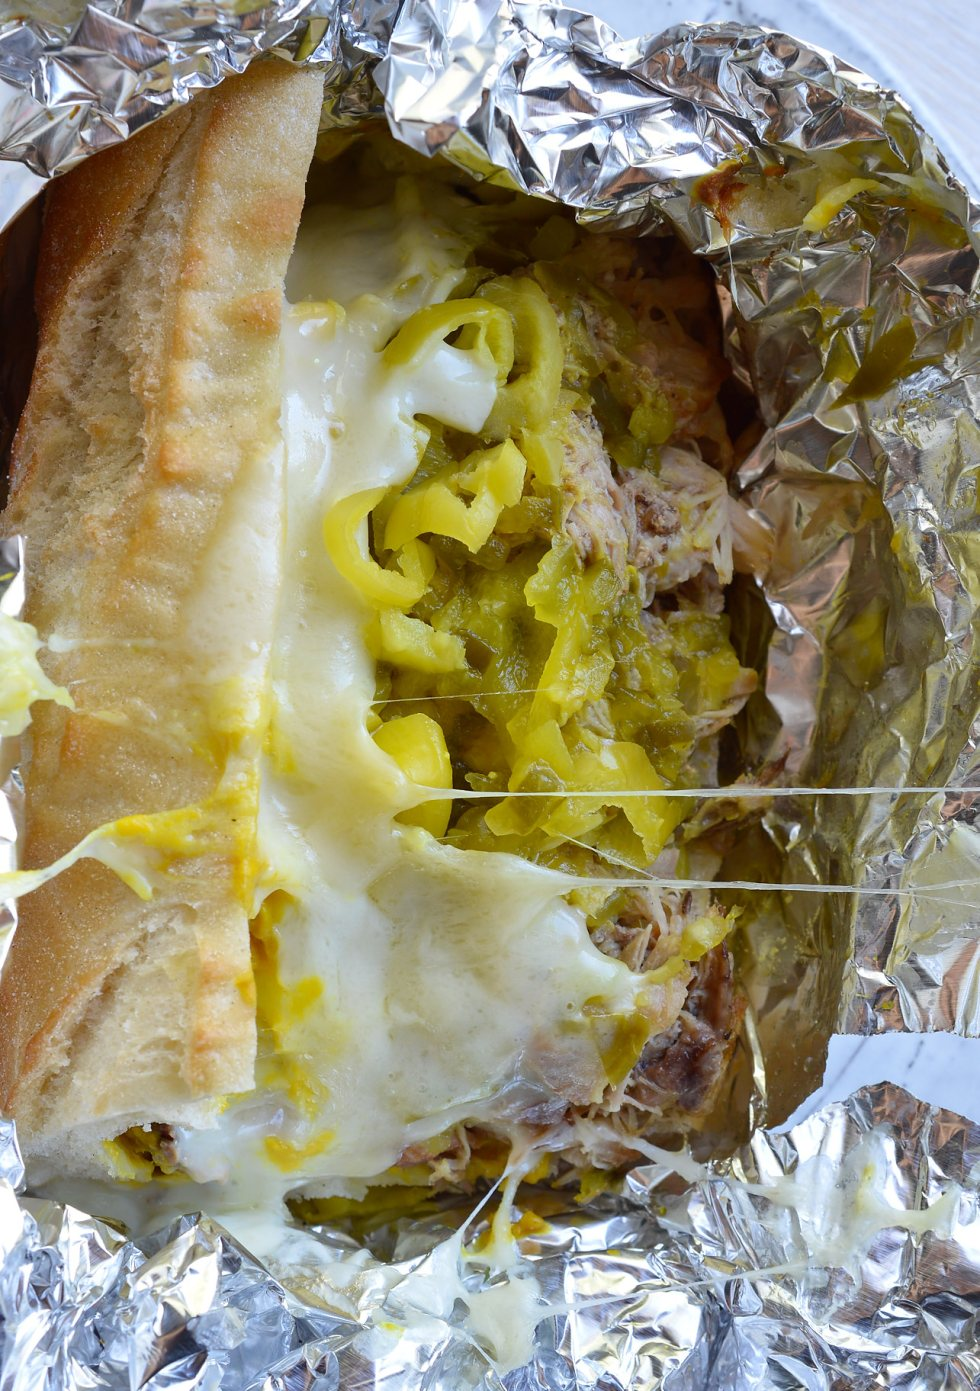 If you are tired of the same old barbecue pork sandwiches give these Slow Cooker Pulled Pork Cuban Sandwiches a try! This easy dinner recipe is inspired by Cuban Sandwiches. Start with Coca-Cola slow cooker pulled pork then add cheese, peperoncinis, pickles, mustard and bread. These oven baked sandwiches are perfect for feeding a crowd!